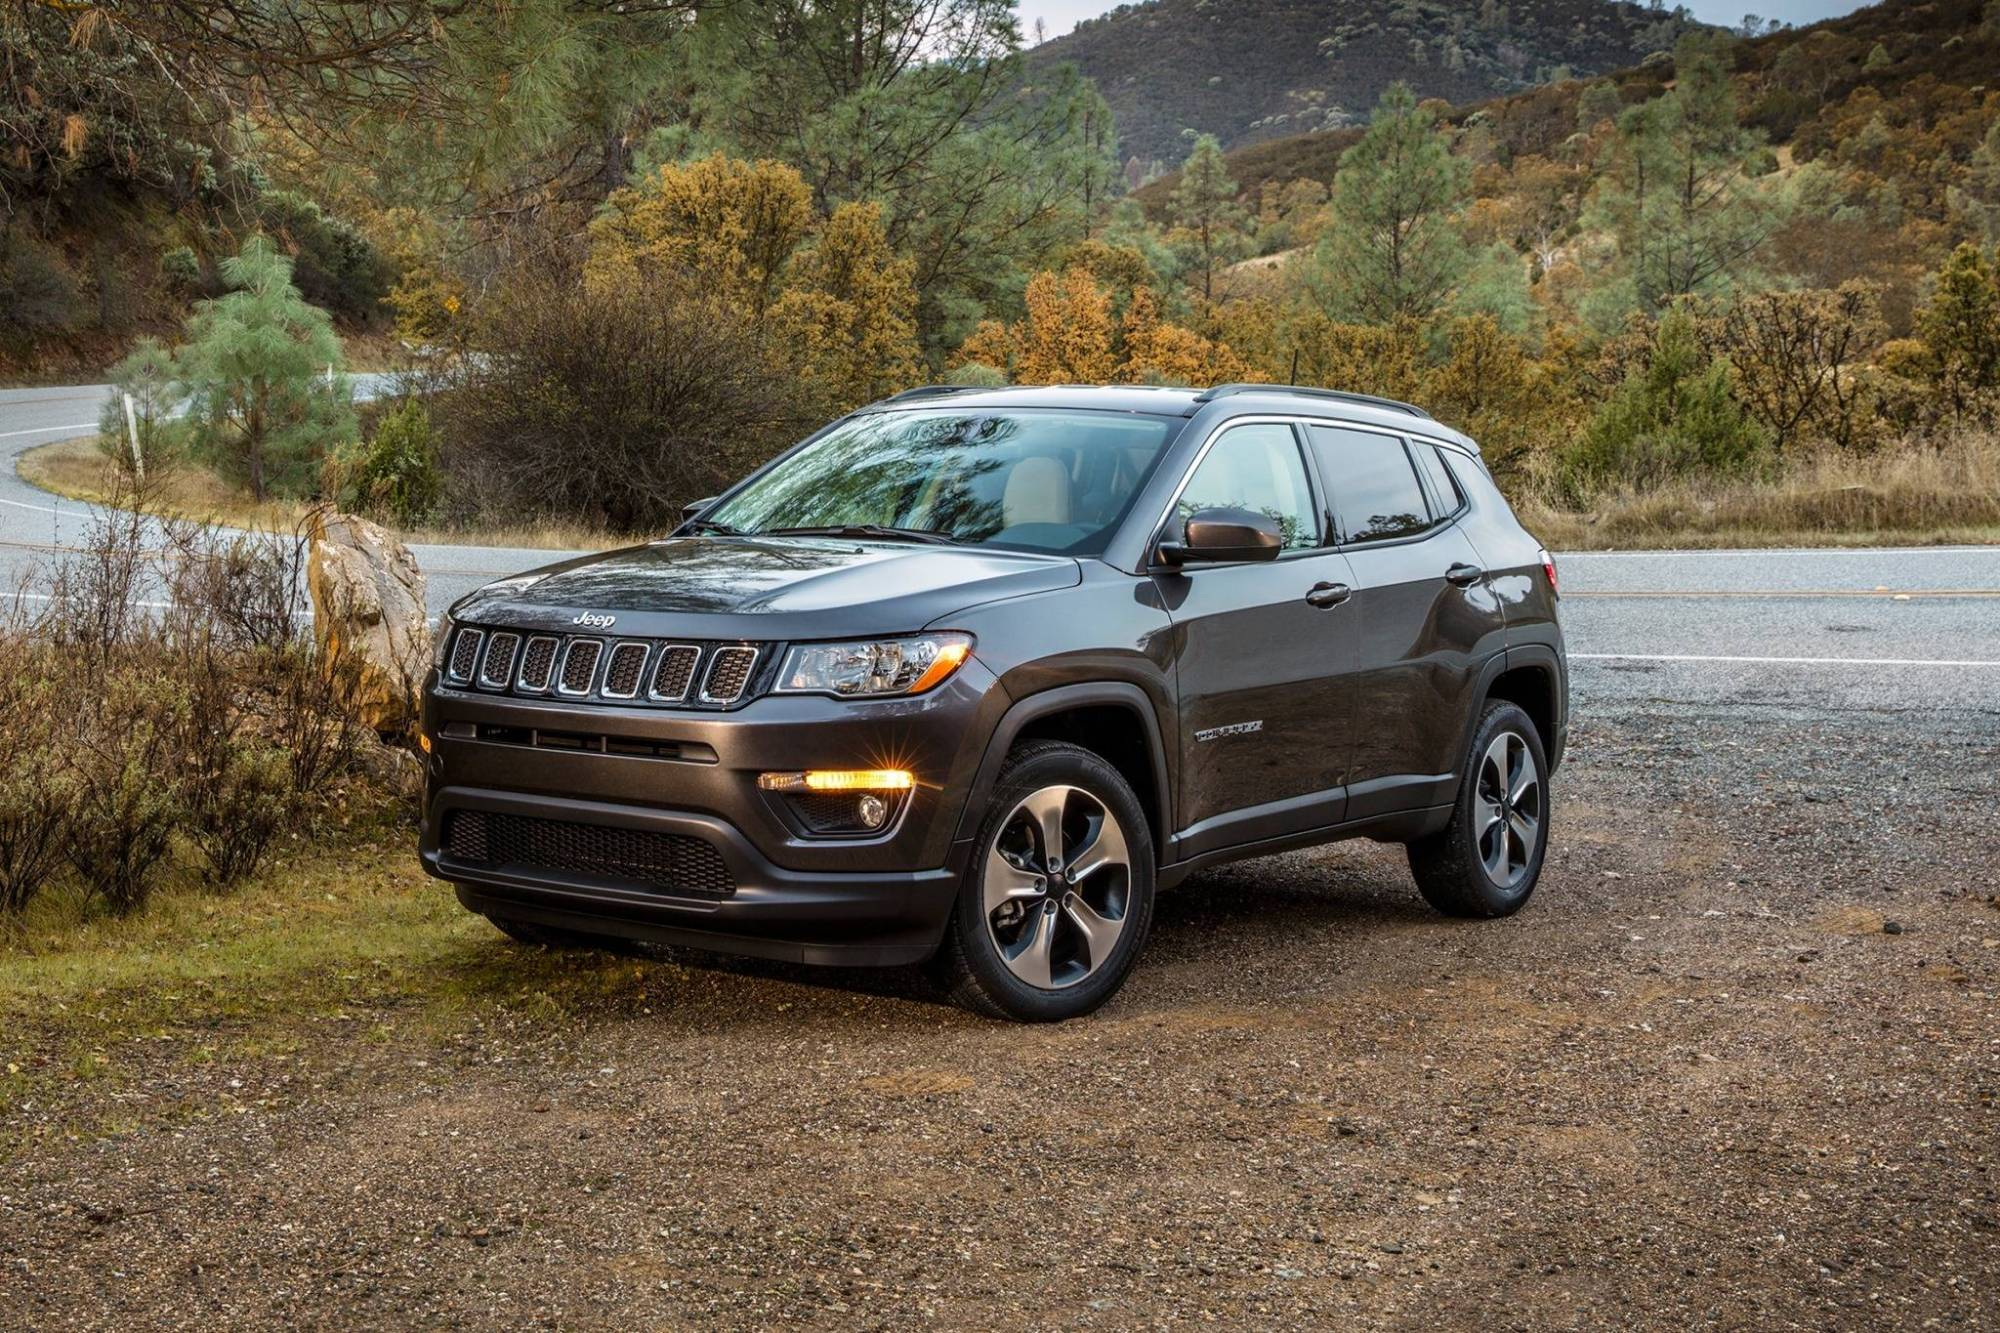 hight resolution of 2017 jeep compass 4dr suv all new latitude fq oem 1 2048